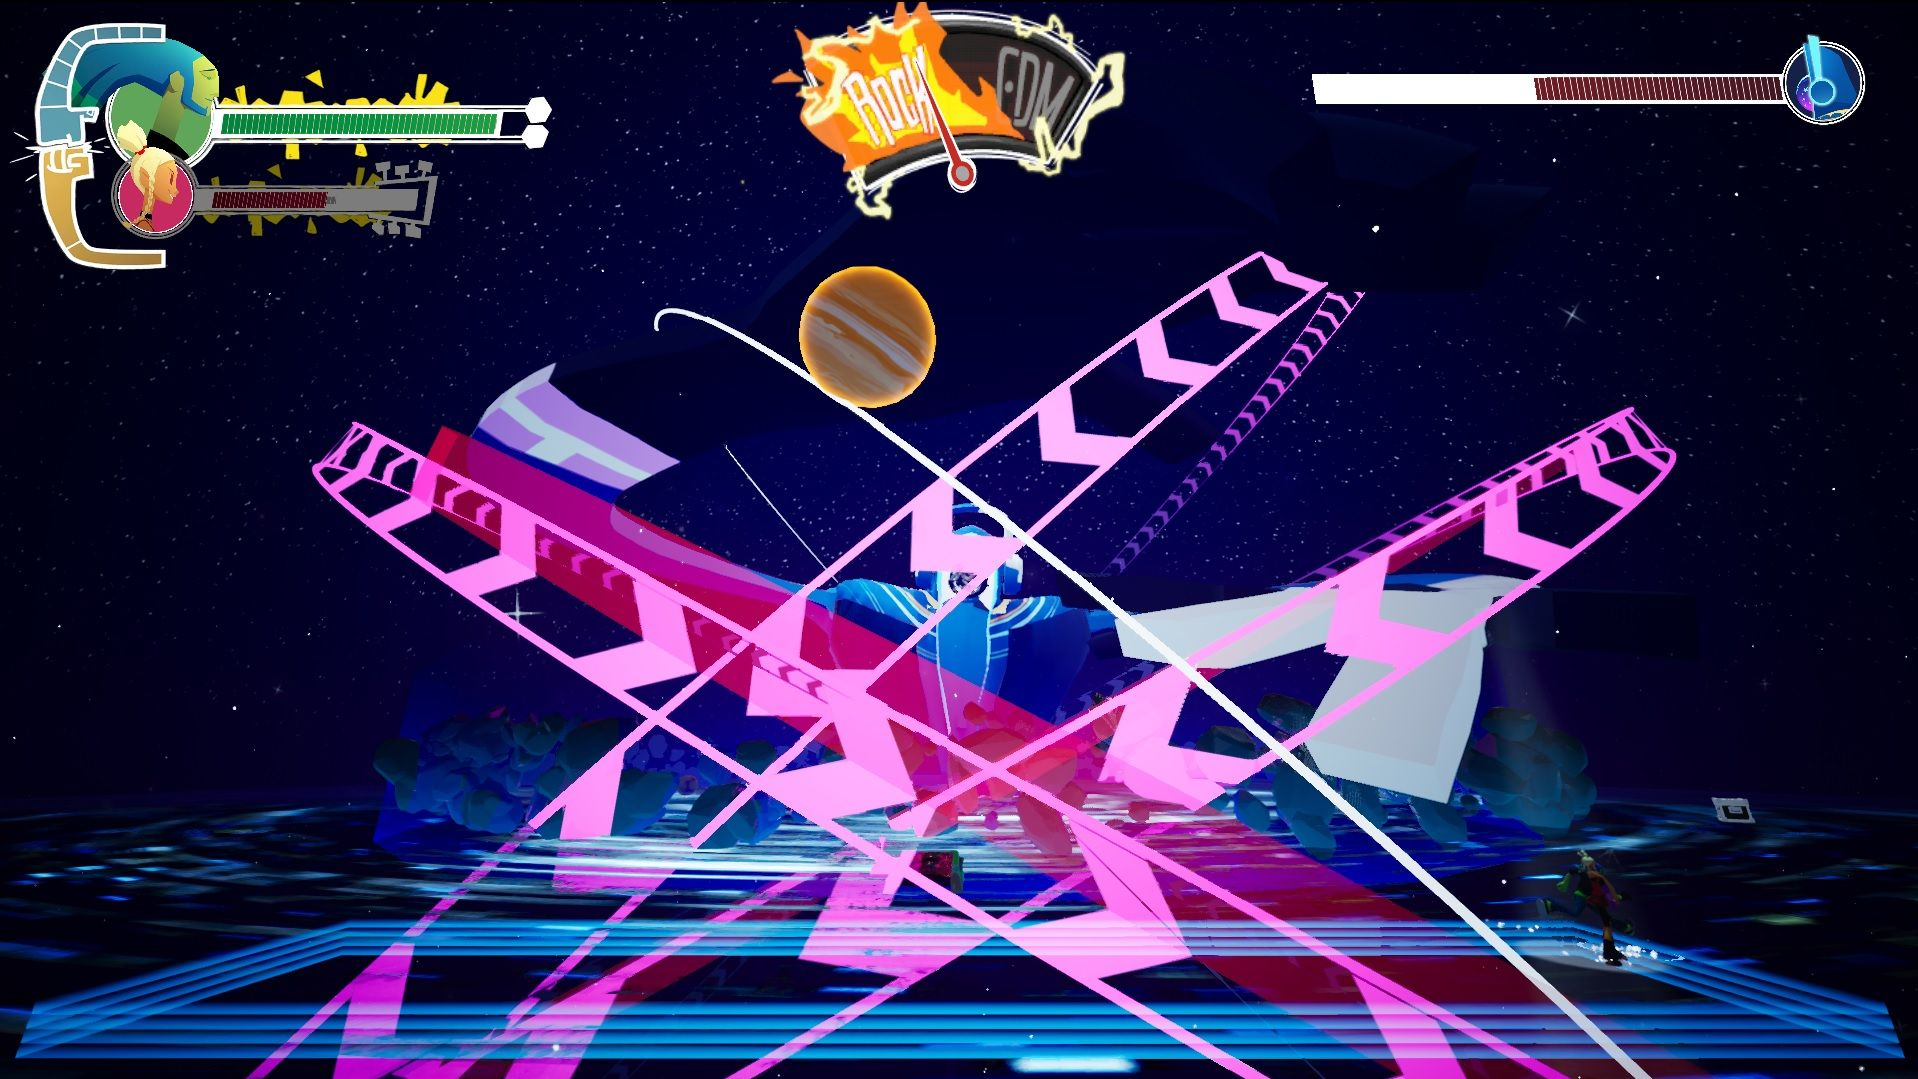 A screenshot of the first boss fight in No Straight Roads. In the centre of the screen a large robot with a disco ball for a head is making other disco balls in the shape of the planets spin around him, as if he were the centre of the universe. The players must avoid their path, telegraphed by pink arrows.